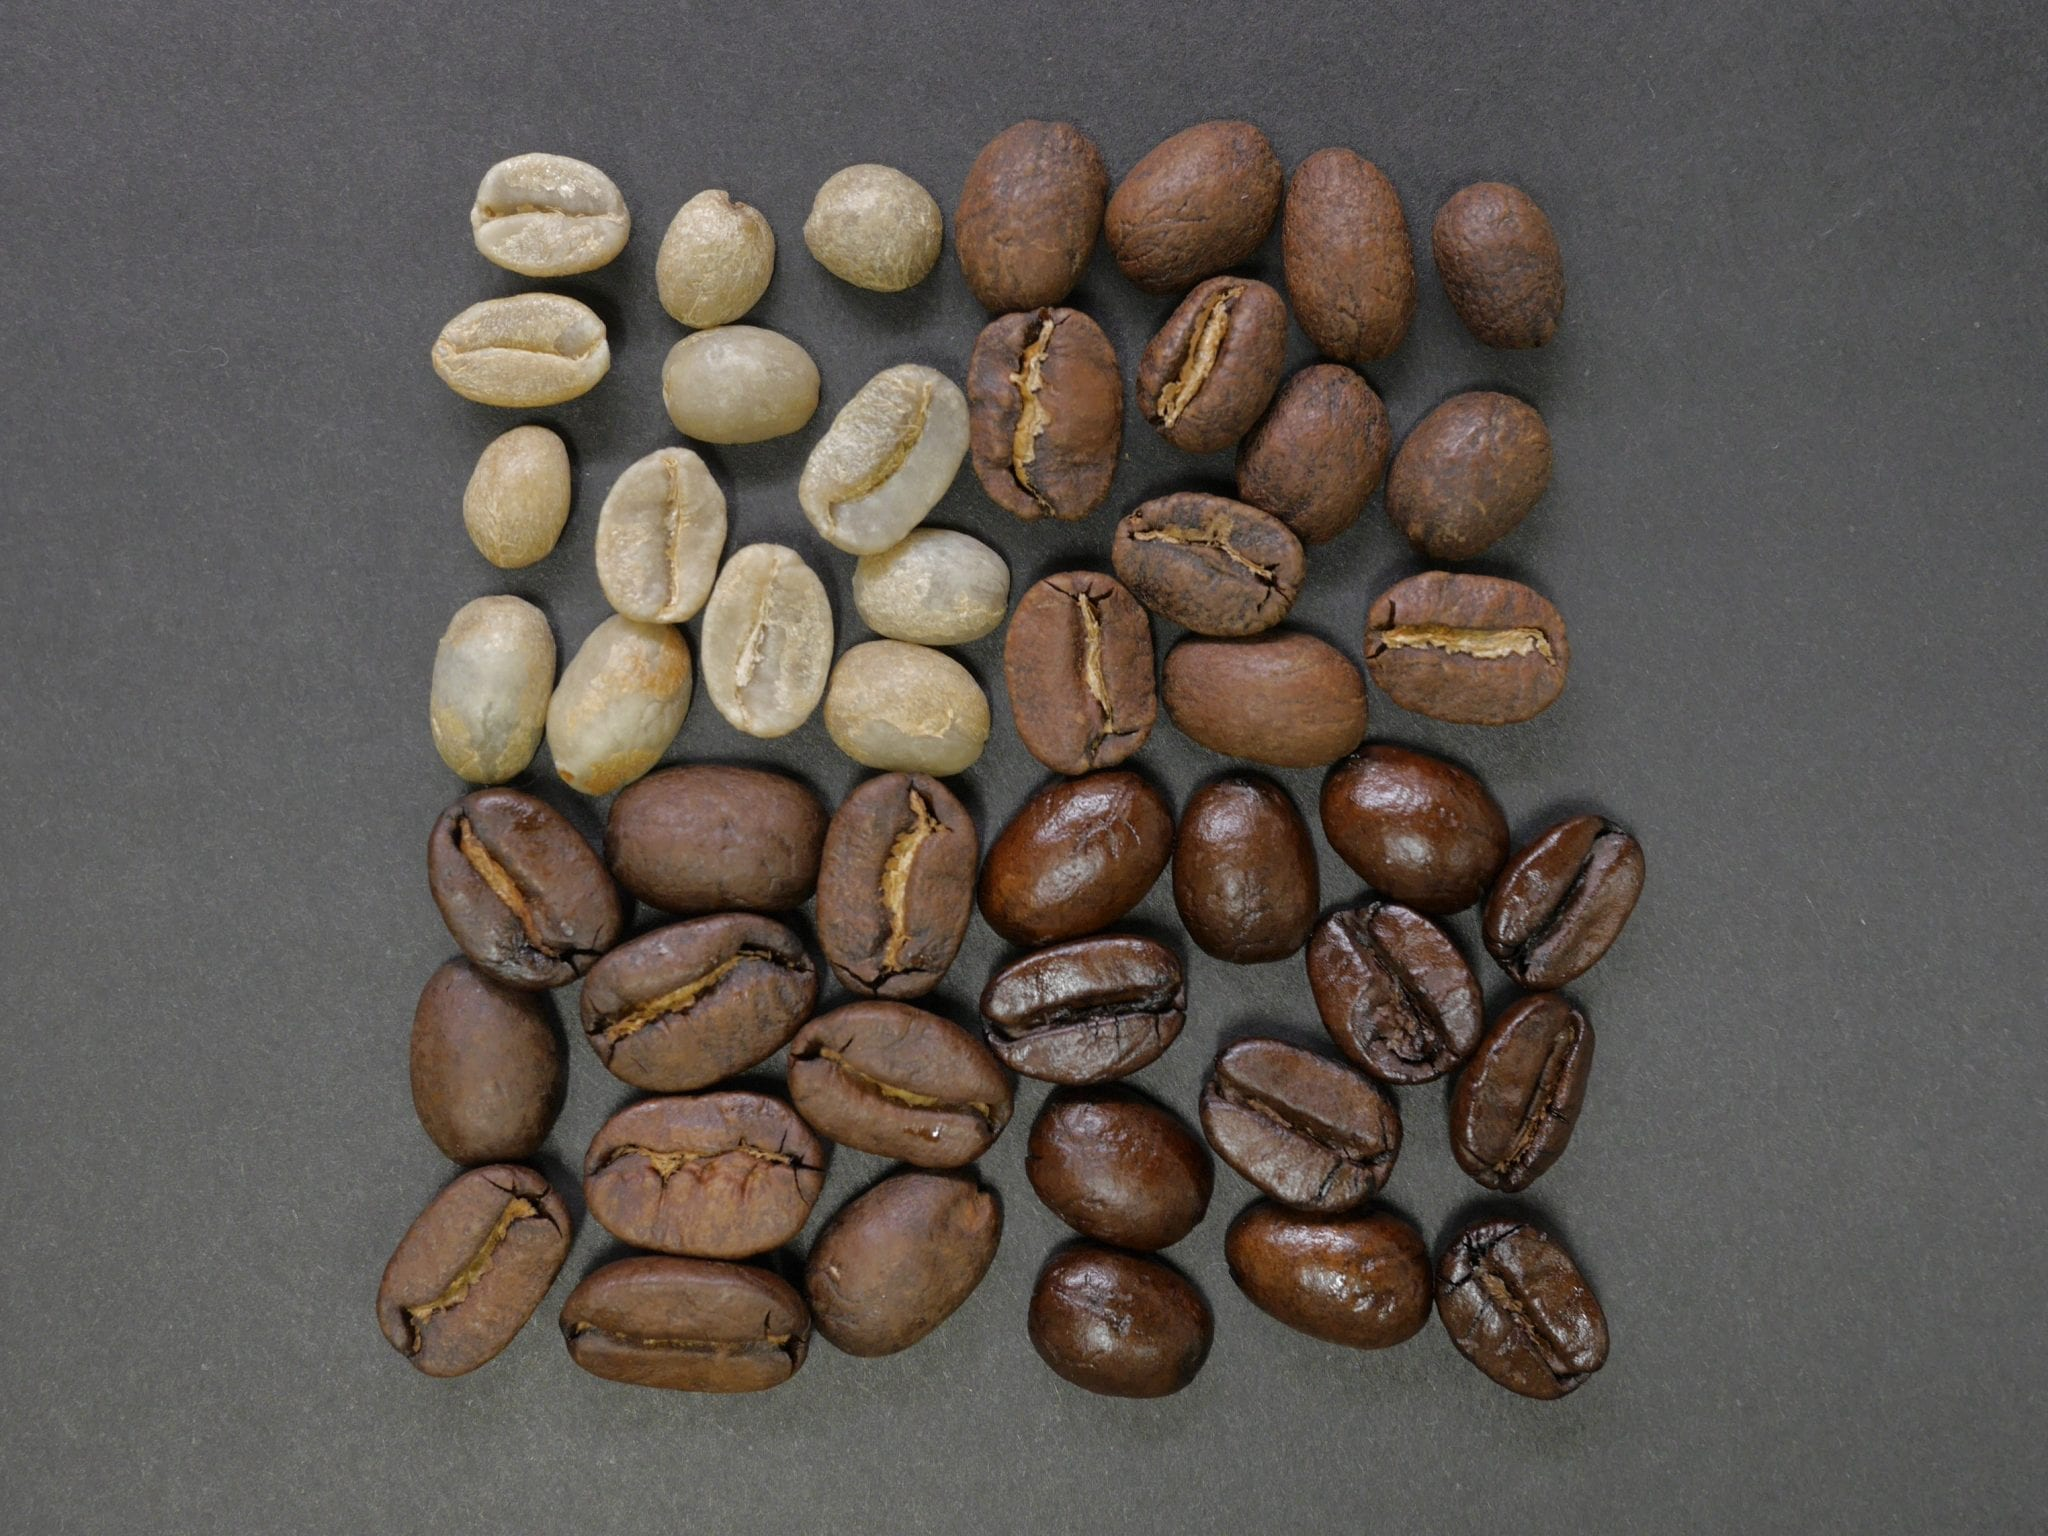 differently roasted coffee beans